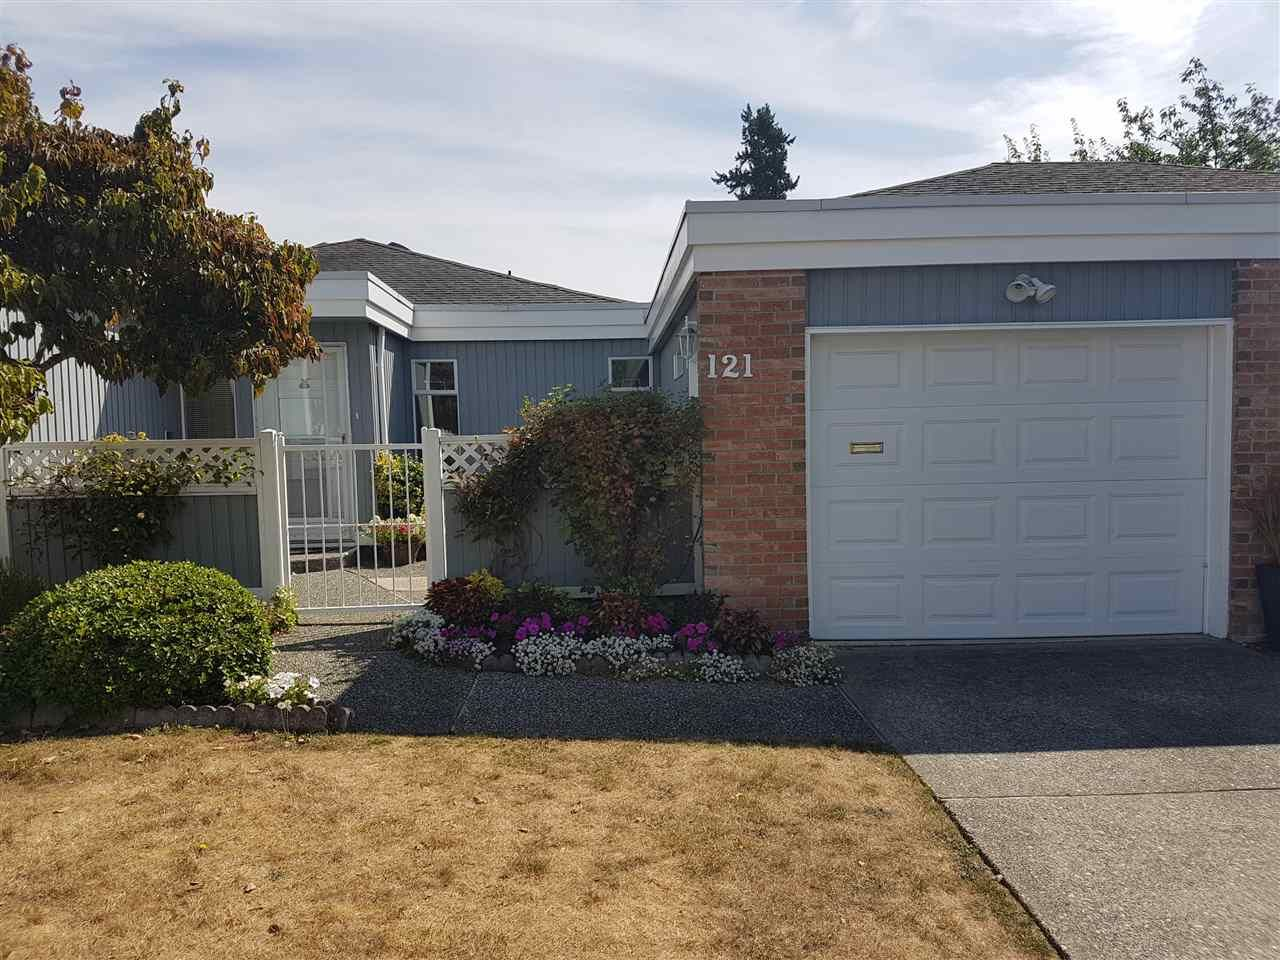 """Main Photo: 121 14271 18A Avenue in Surrey: Sunnyside Park Surrey Townhouse for sale in """"OCEAN BLUFF COURT"""" (South Surrey White Rock)  : MLS®# R2197469"""